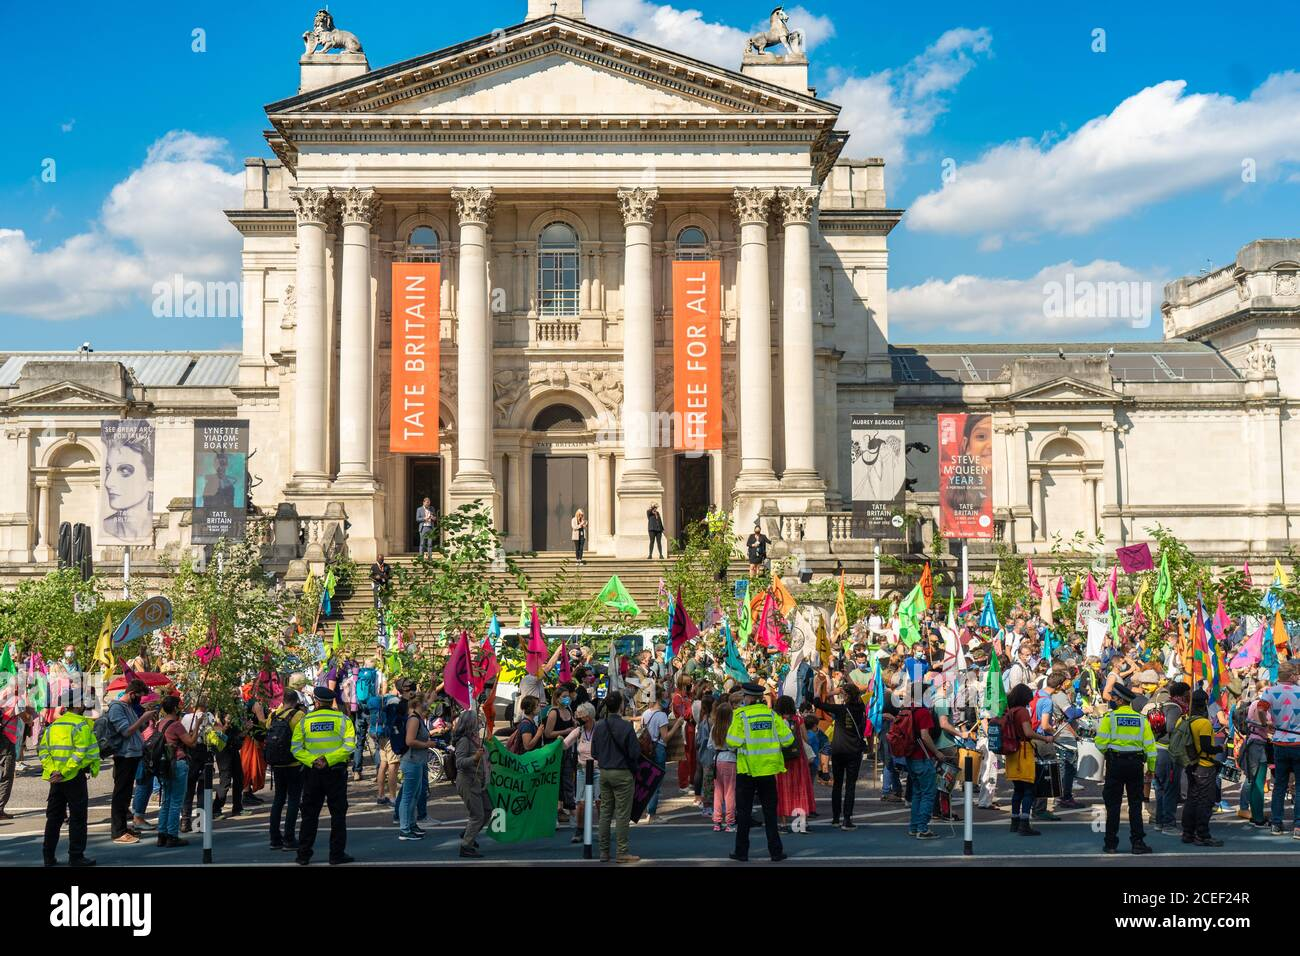 London, UK. Tuesday, September 1, 2020. A protest by Extinction Rebellion starting out at the Tate Britain in London in support of the Climate and Ecological Emergency (CEE) Bill. Photo: Roger Garfield/Alamy Live News Stock Photo